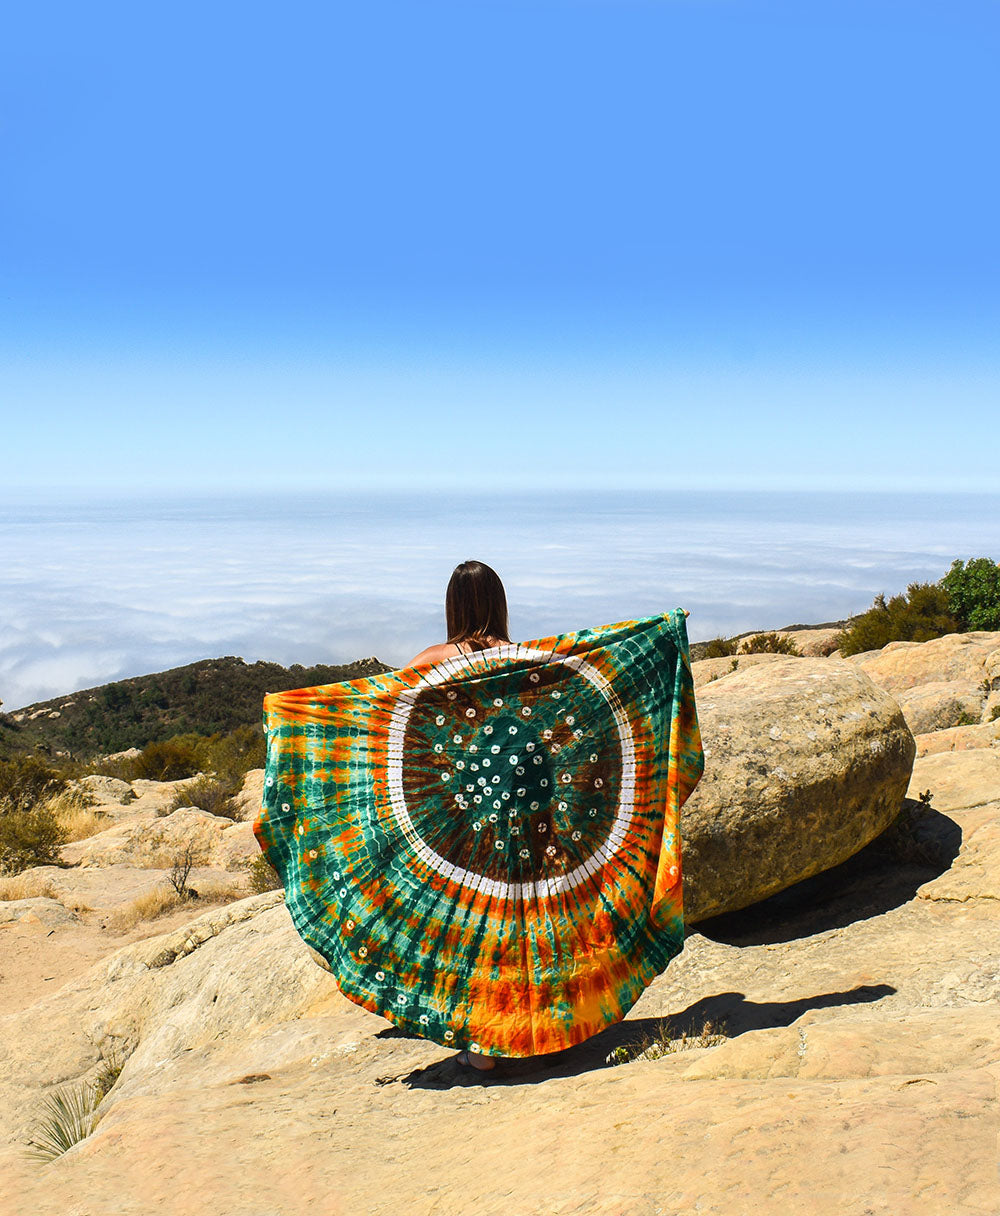 Channel your inner hippie and let your soul free with tie dye everything this summer. From clothes, to beach blankets, to tote bags, and home decor. Tie dye will be heating up the summer with it's classic summer of love vibe.